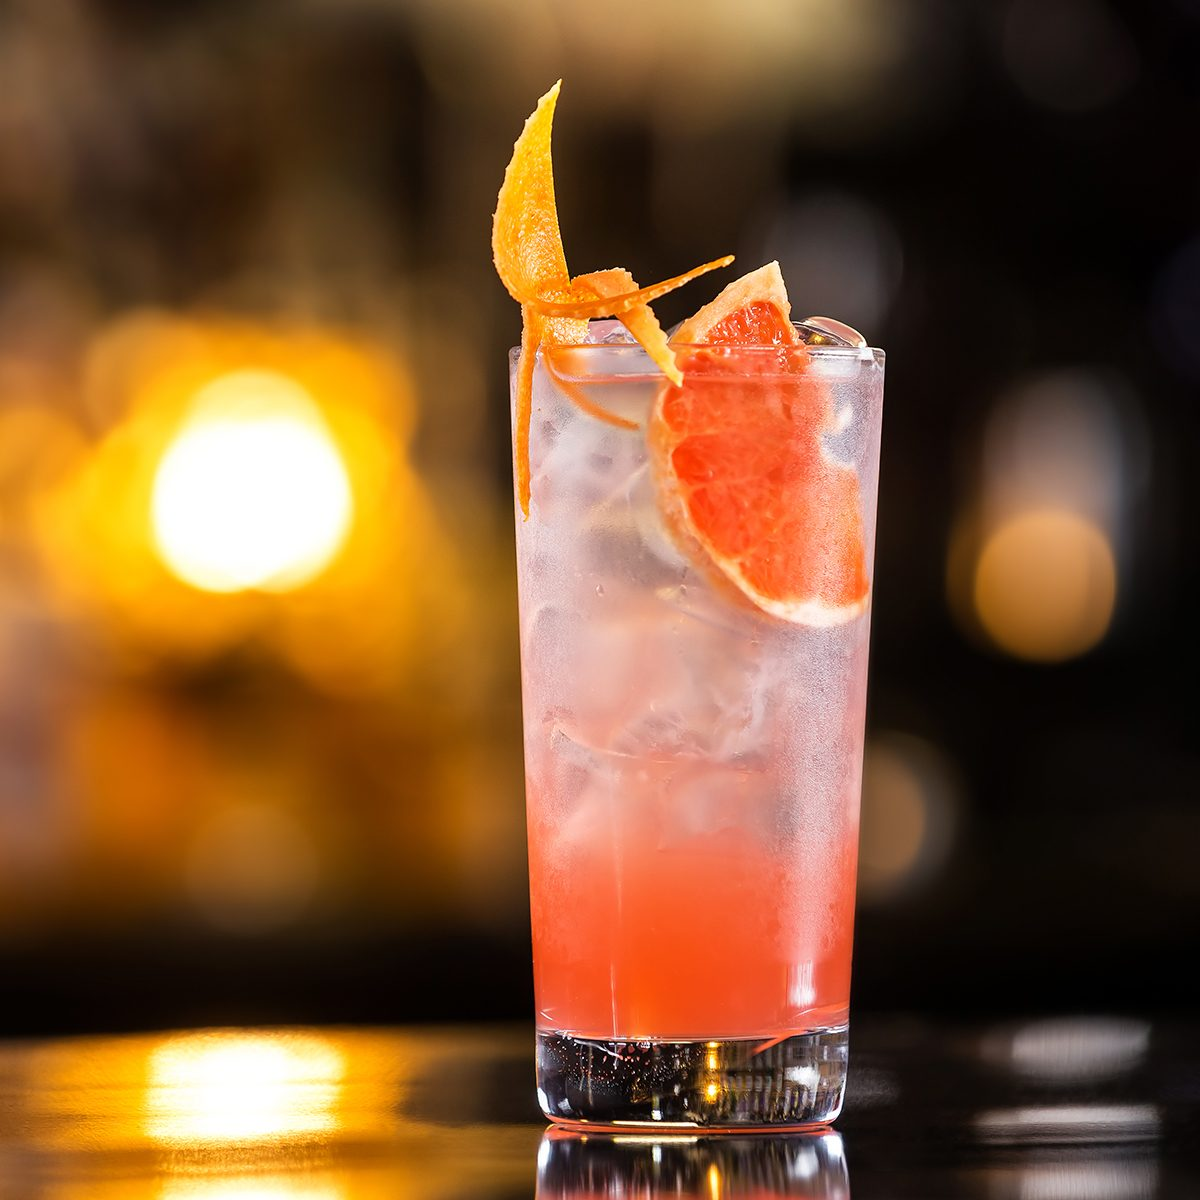 Closeup glass of greyhound cocktail decorated with grapefruit at bright bar counter background.